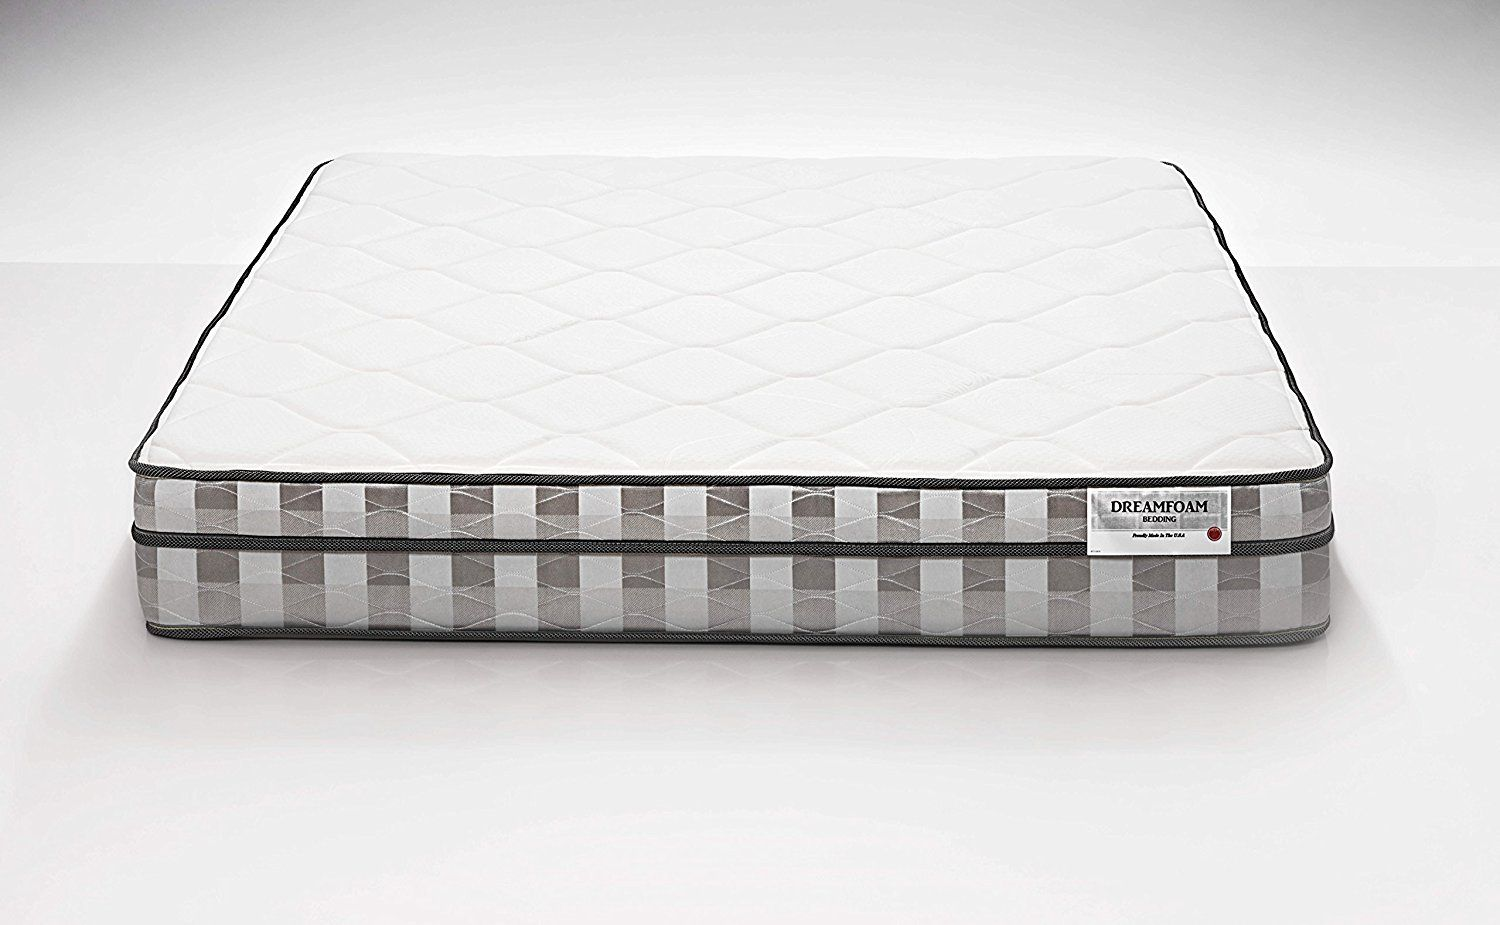 Dreamfoam Bedding Ultimate Dreams Short 9 Inch Crazy Euro Top Mattress Queen To View Further For This Item Visit The Image Link Th Euro Top Mattress Mattress Bed